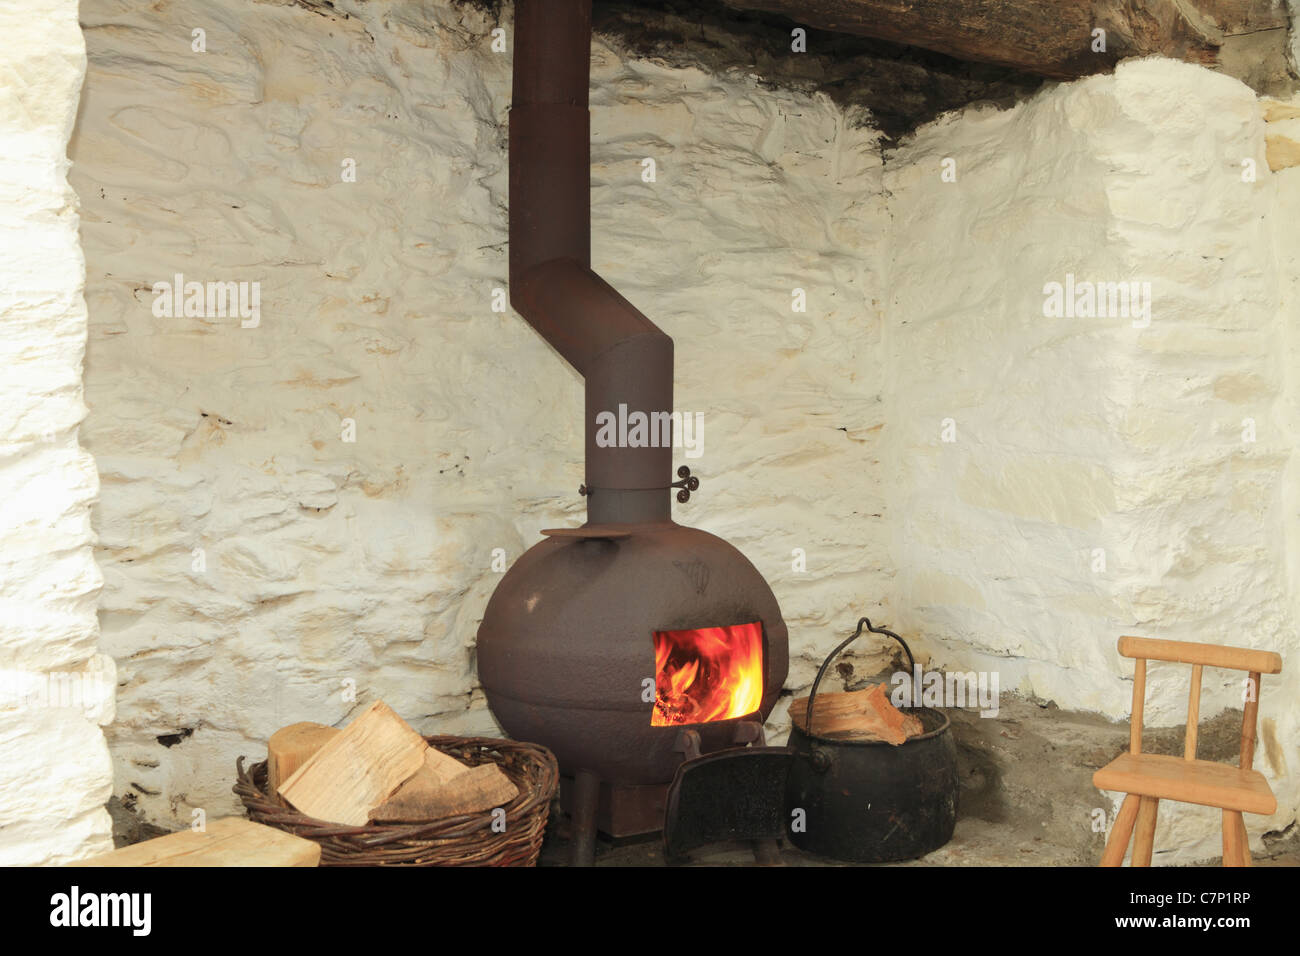 A Pot Bellied Stove In A Traditional Irish Fireplace County Kerry Stock Photo Royalty Free